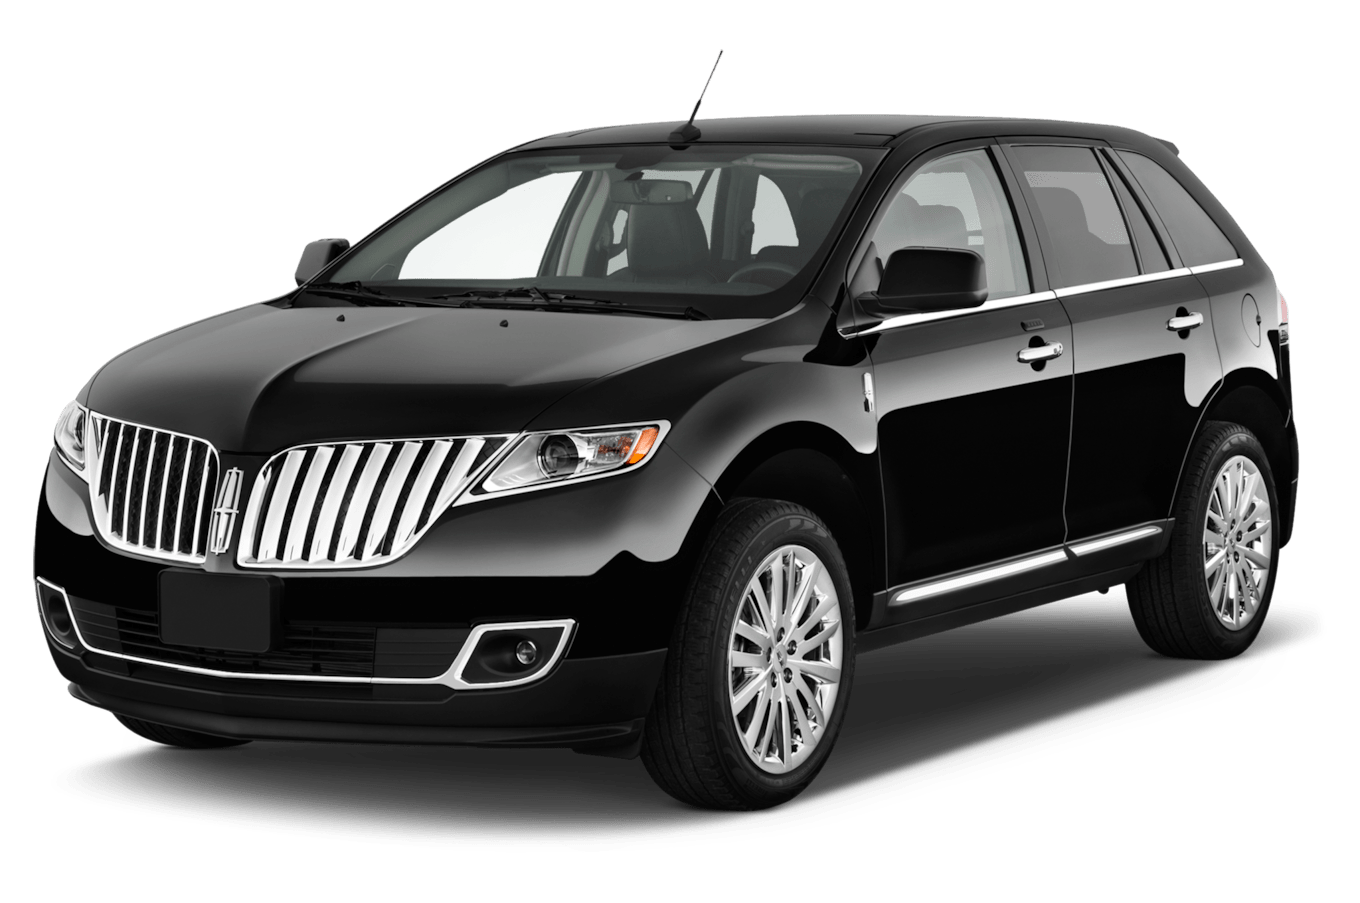 hight resolution of 2013 lincoln mkx reviews and rating motor trend 31 55 2011 lincoln mkt engine diagram